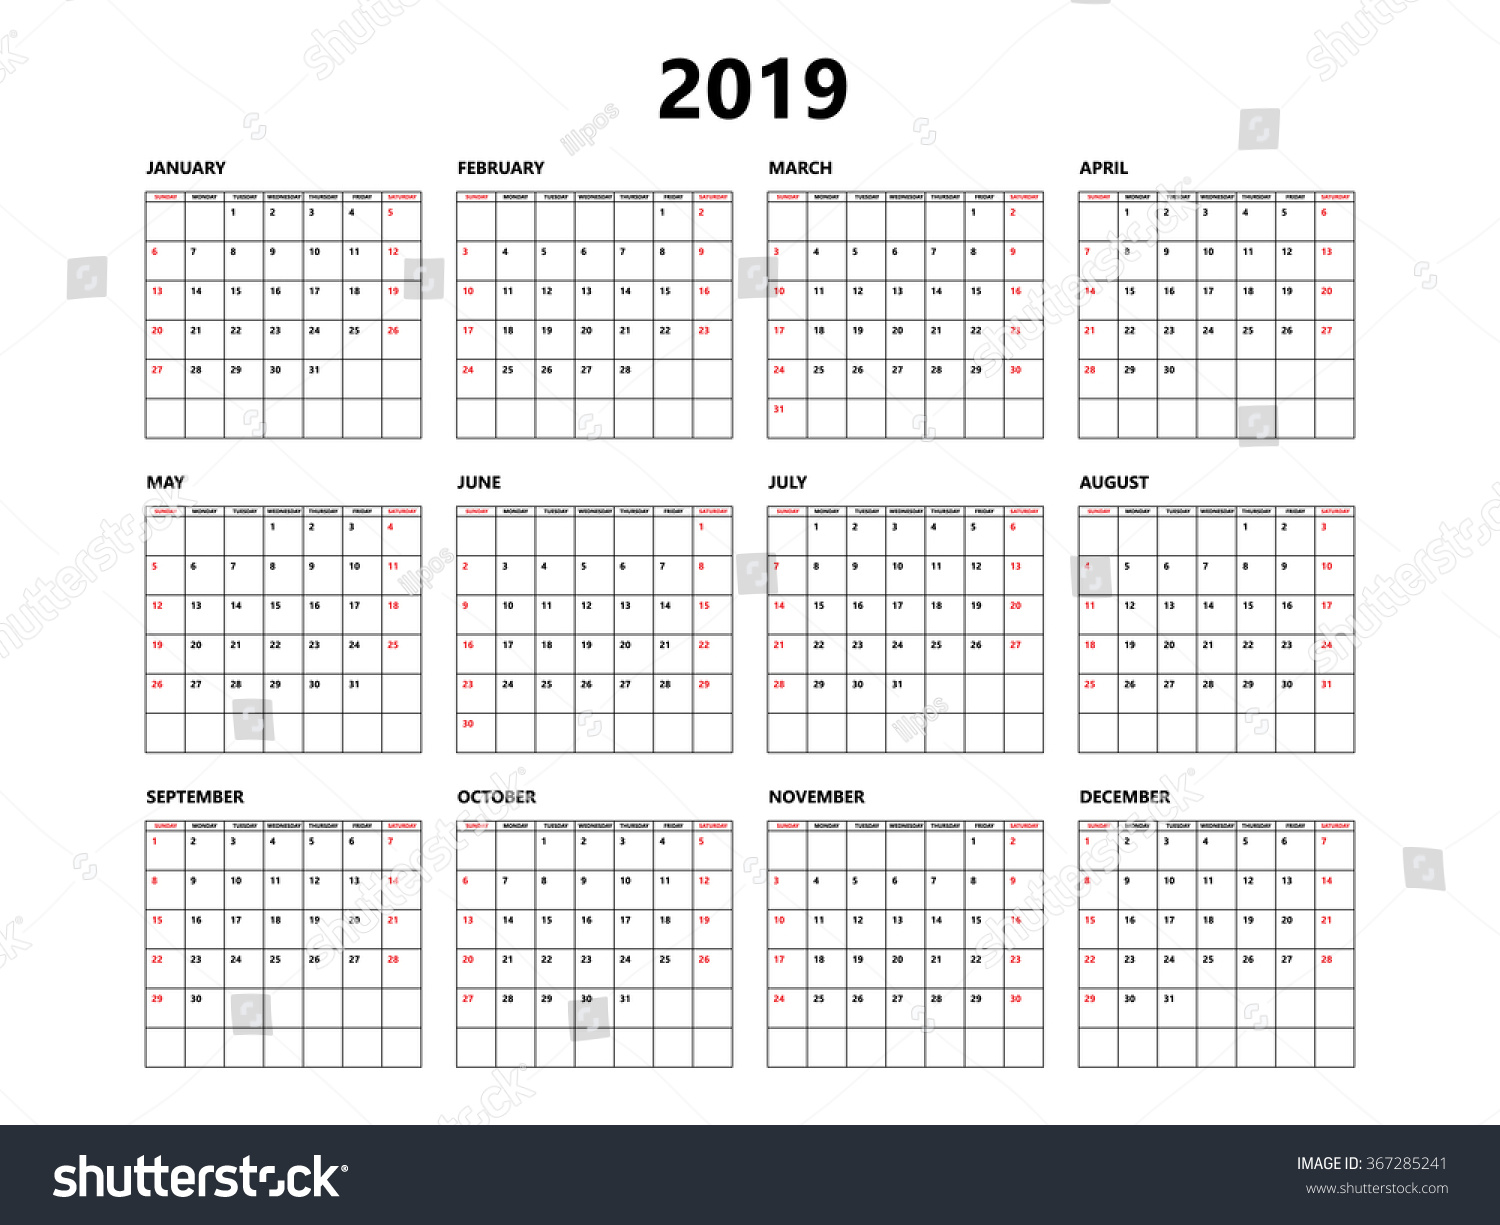 calendar 2019 year simple style with grid week starts from sunday